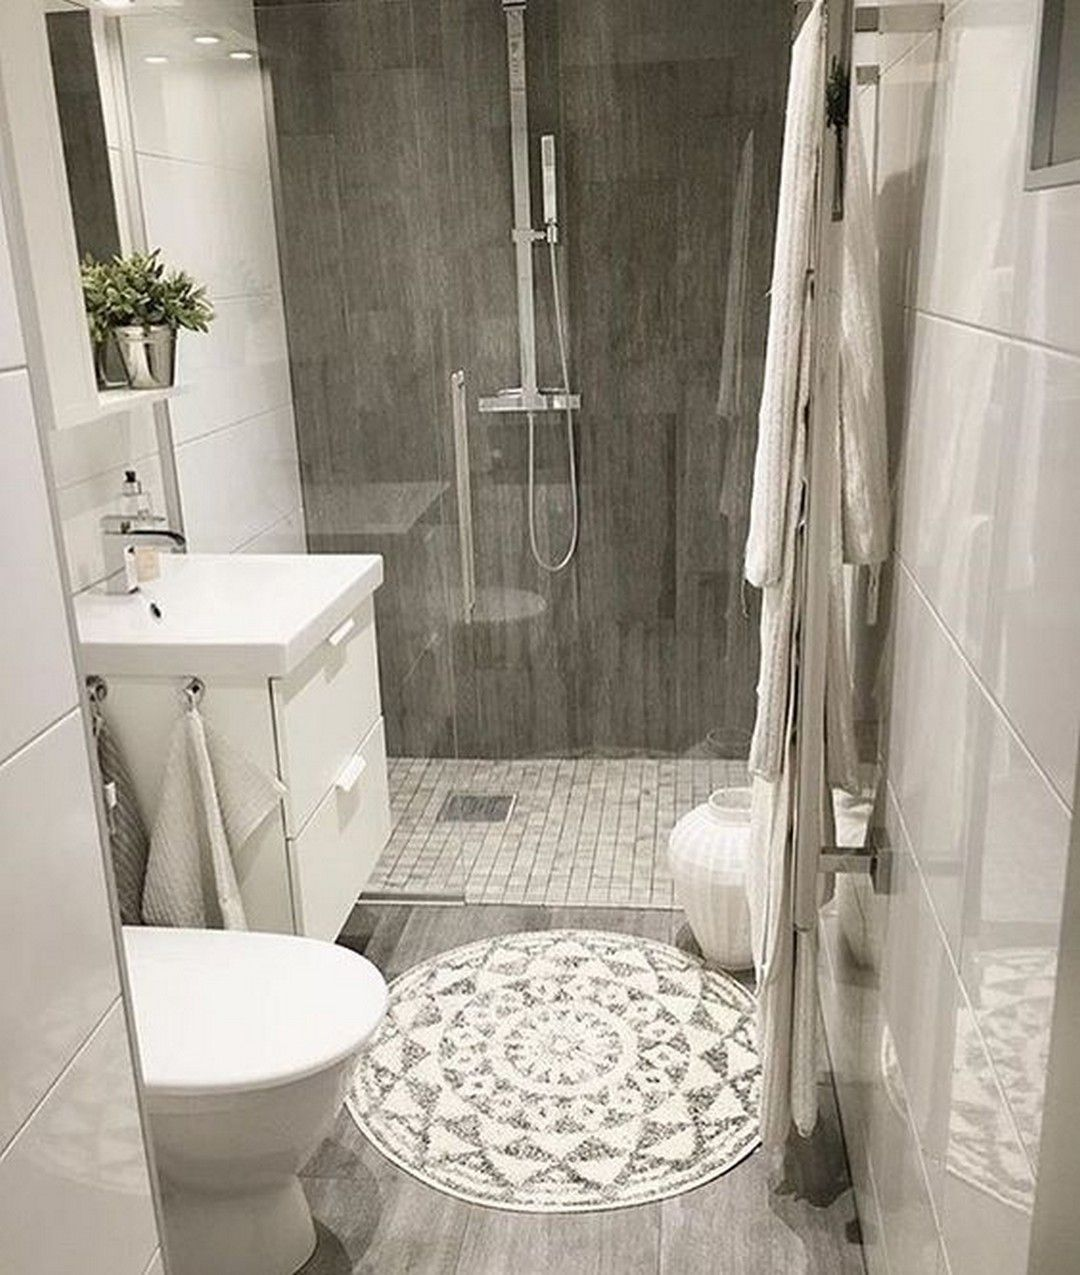 How To Begin Bathroom Renovation For Small Spaces With The Following - Where to start bathroom renovation